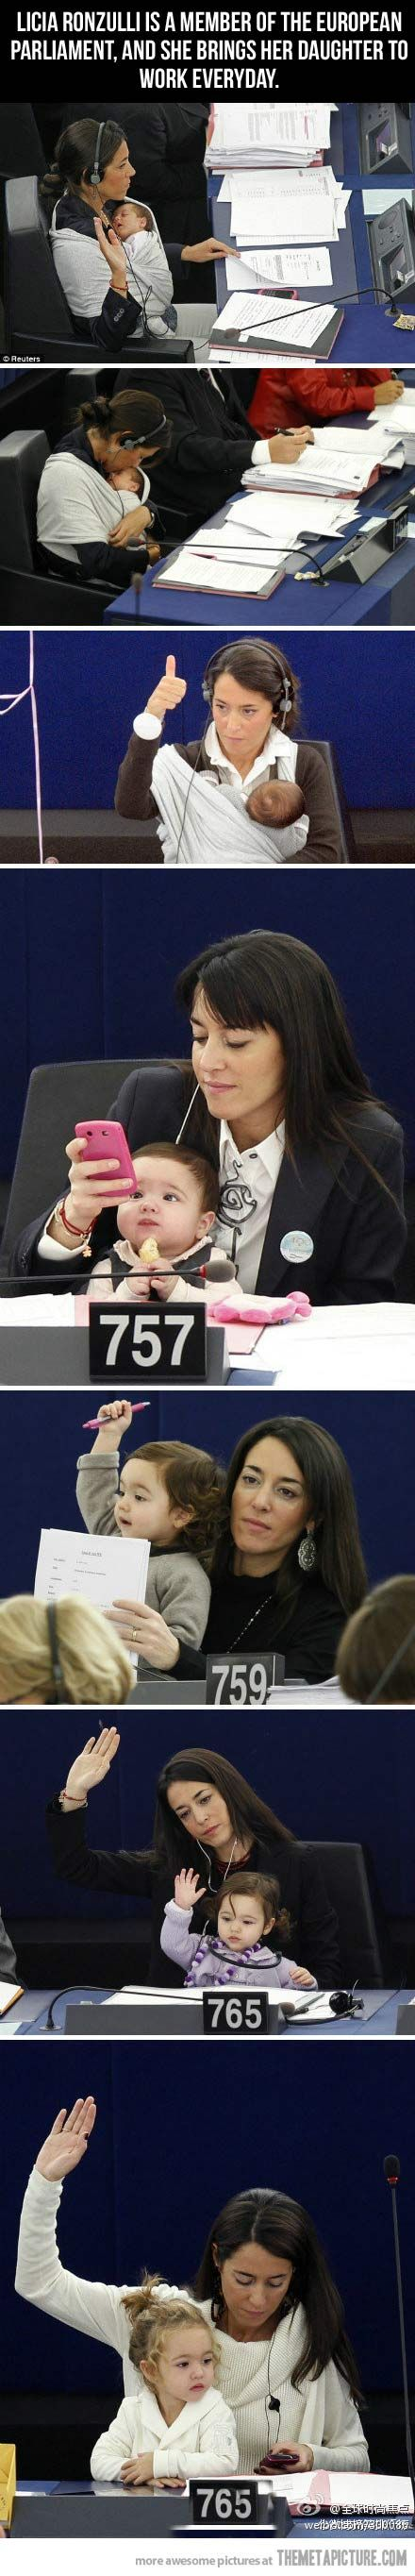 Licia Ronzulli often brings her daughter at the European Parliament as a symbolic gesture to reclaim more rights for women in reconciling work and family life.